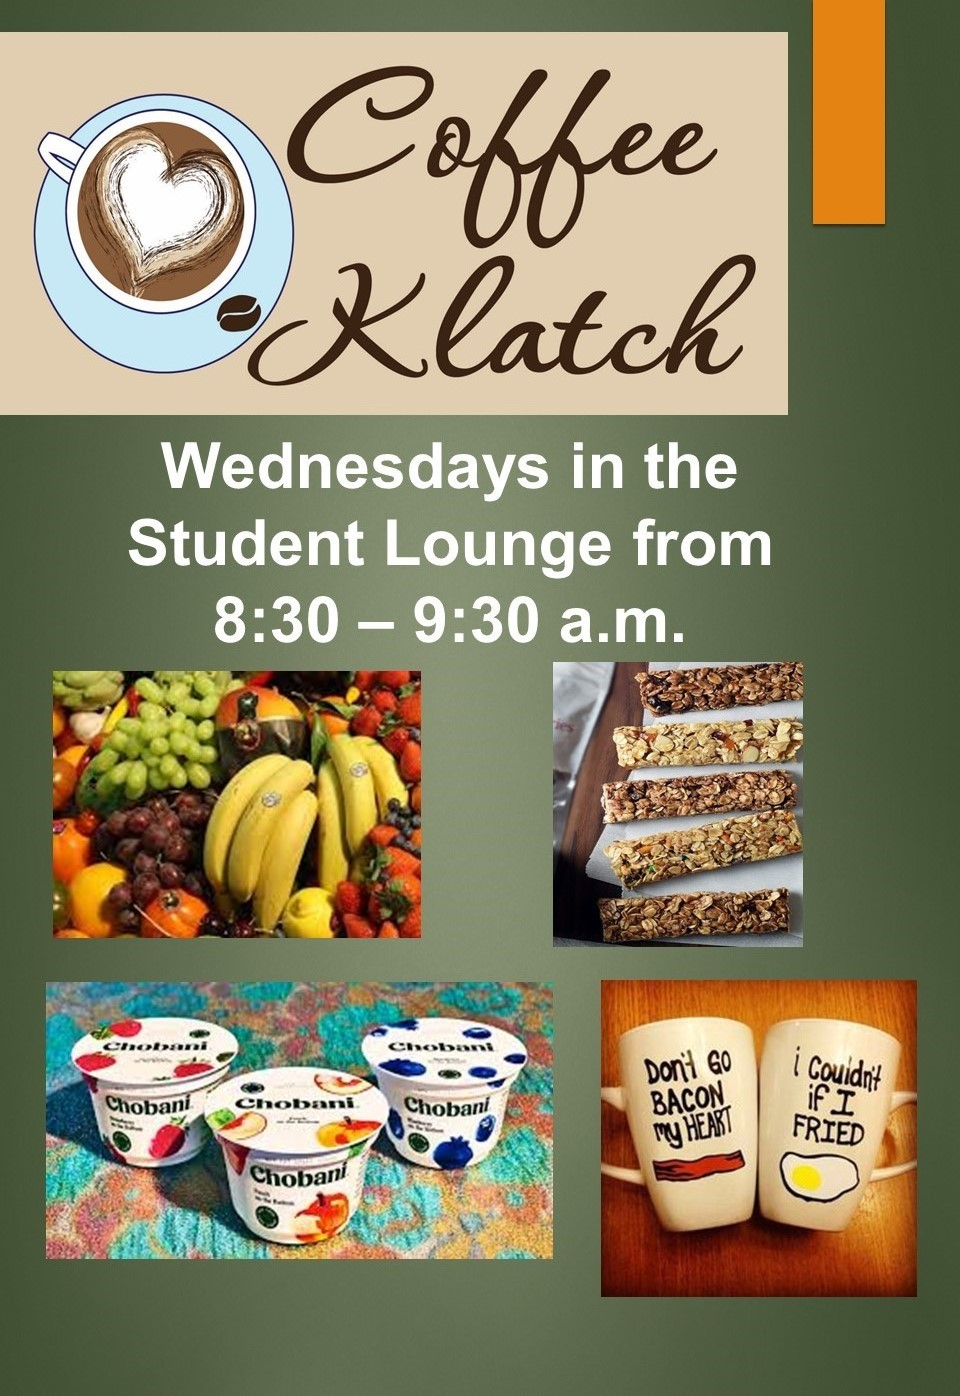 poster advertising coffee klatch wednesdays